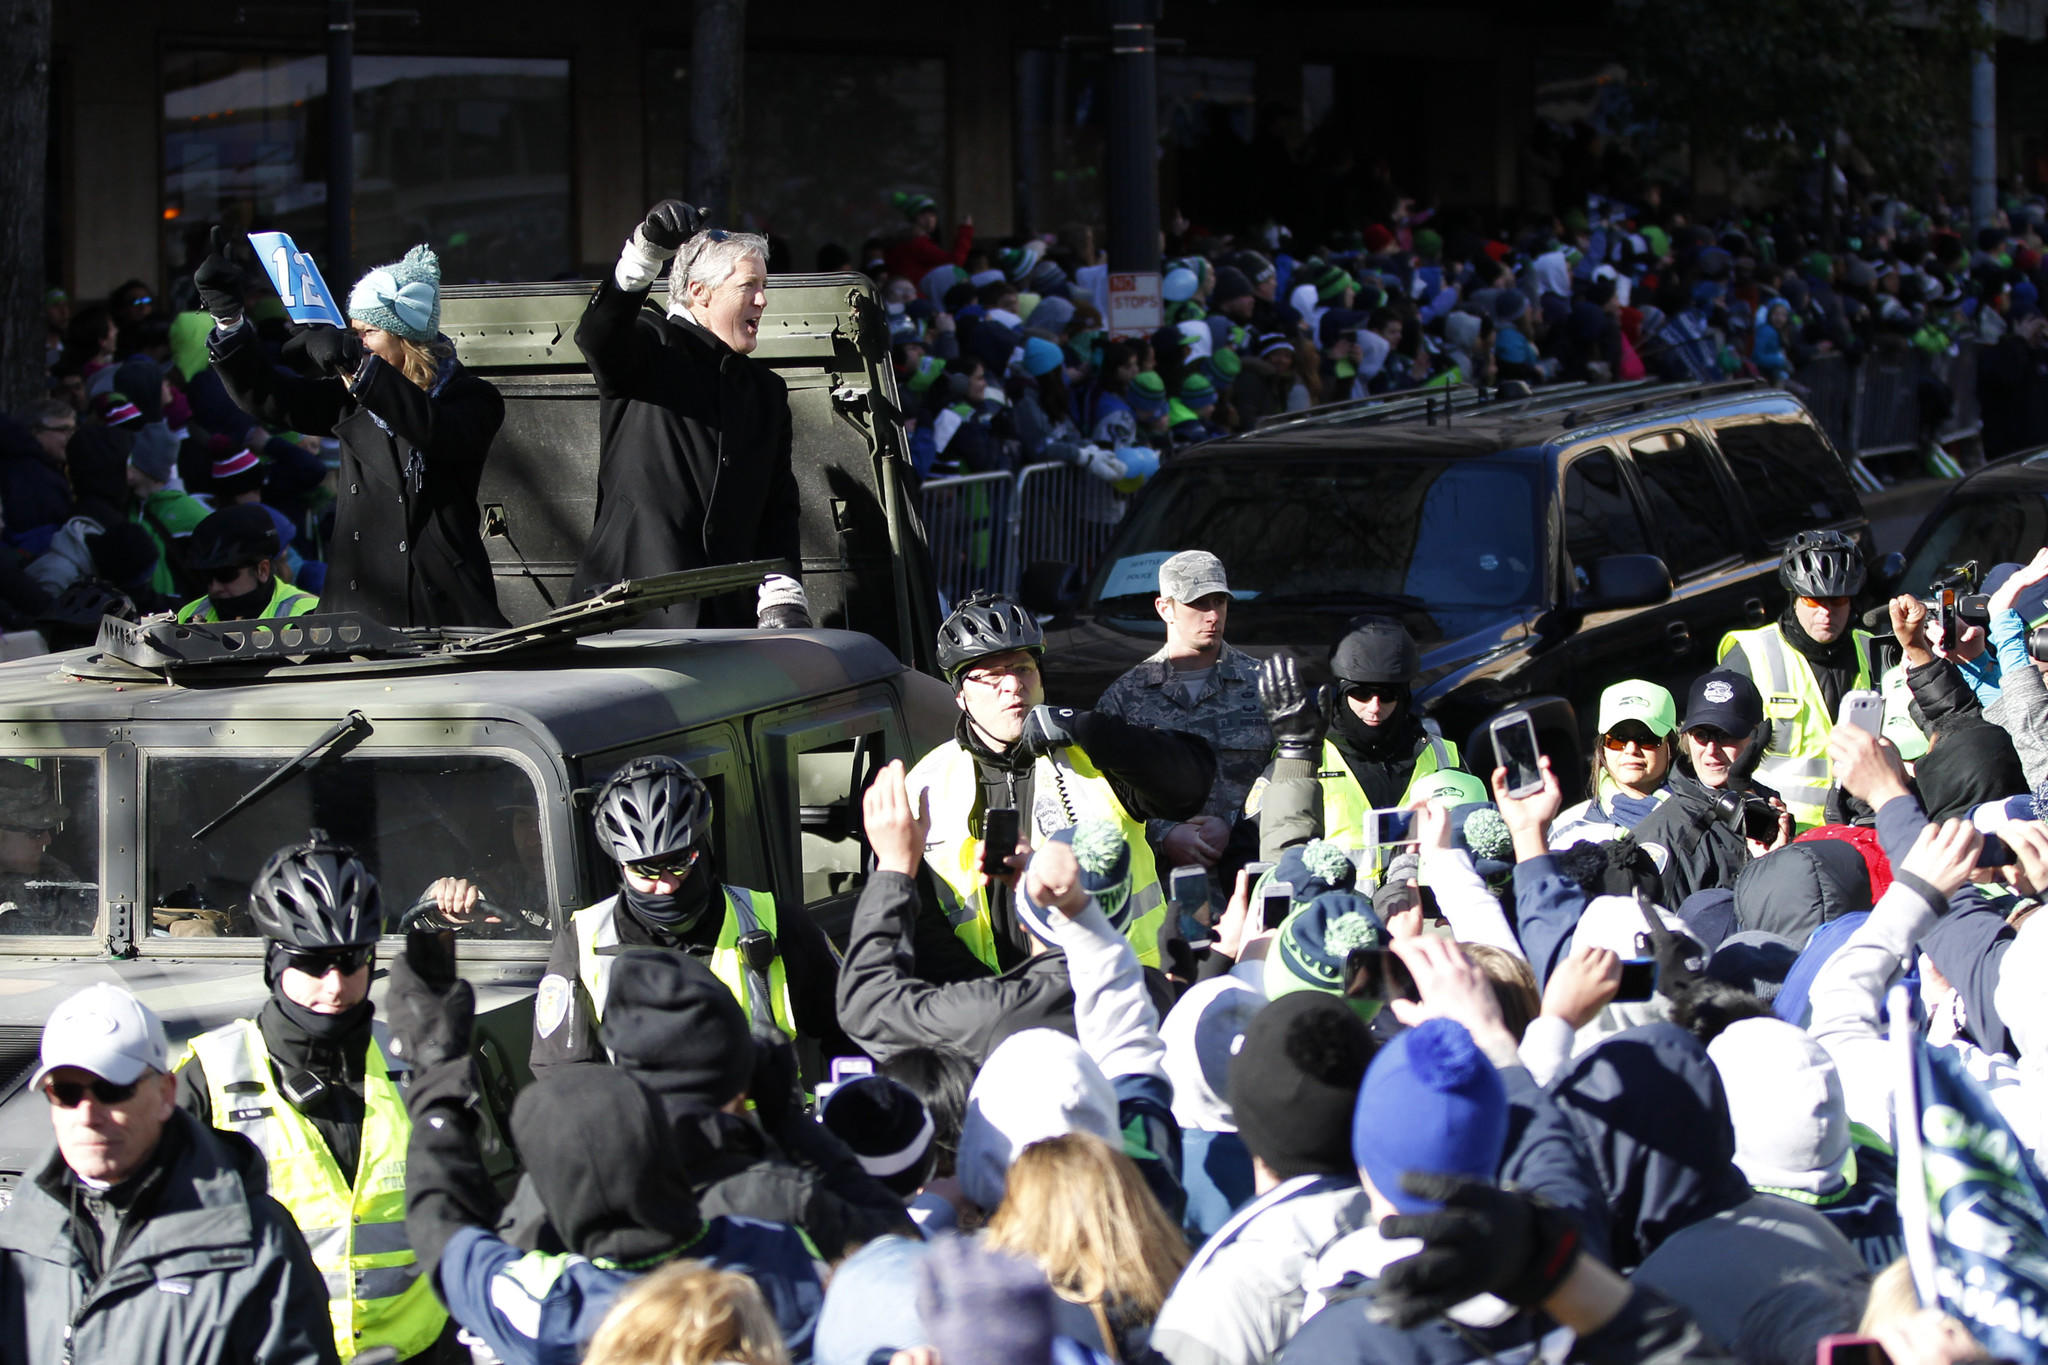 Seattle Seahawks head coach Pete Carroll waves to the crowd during a Super Bowl championship parade held in downtown Seattle.=